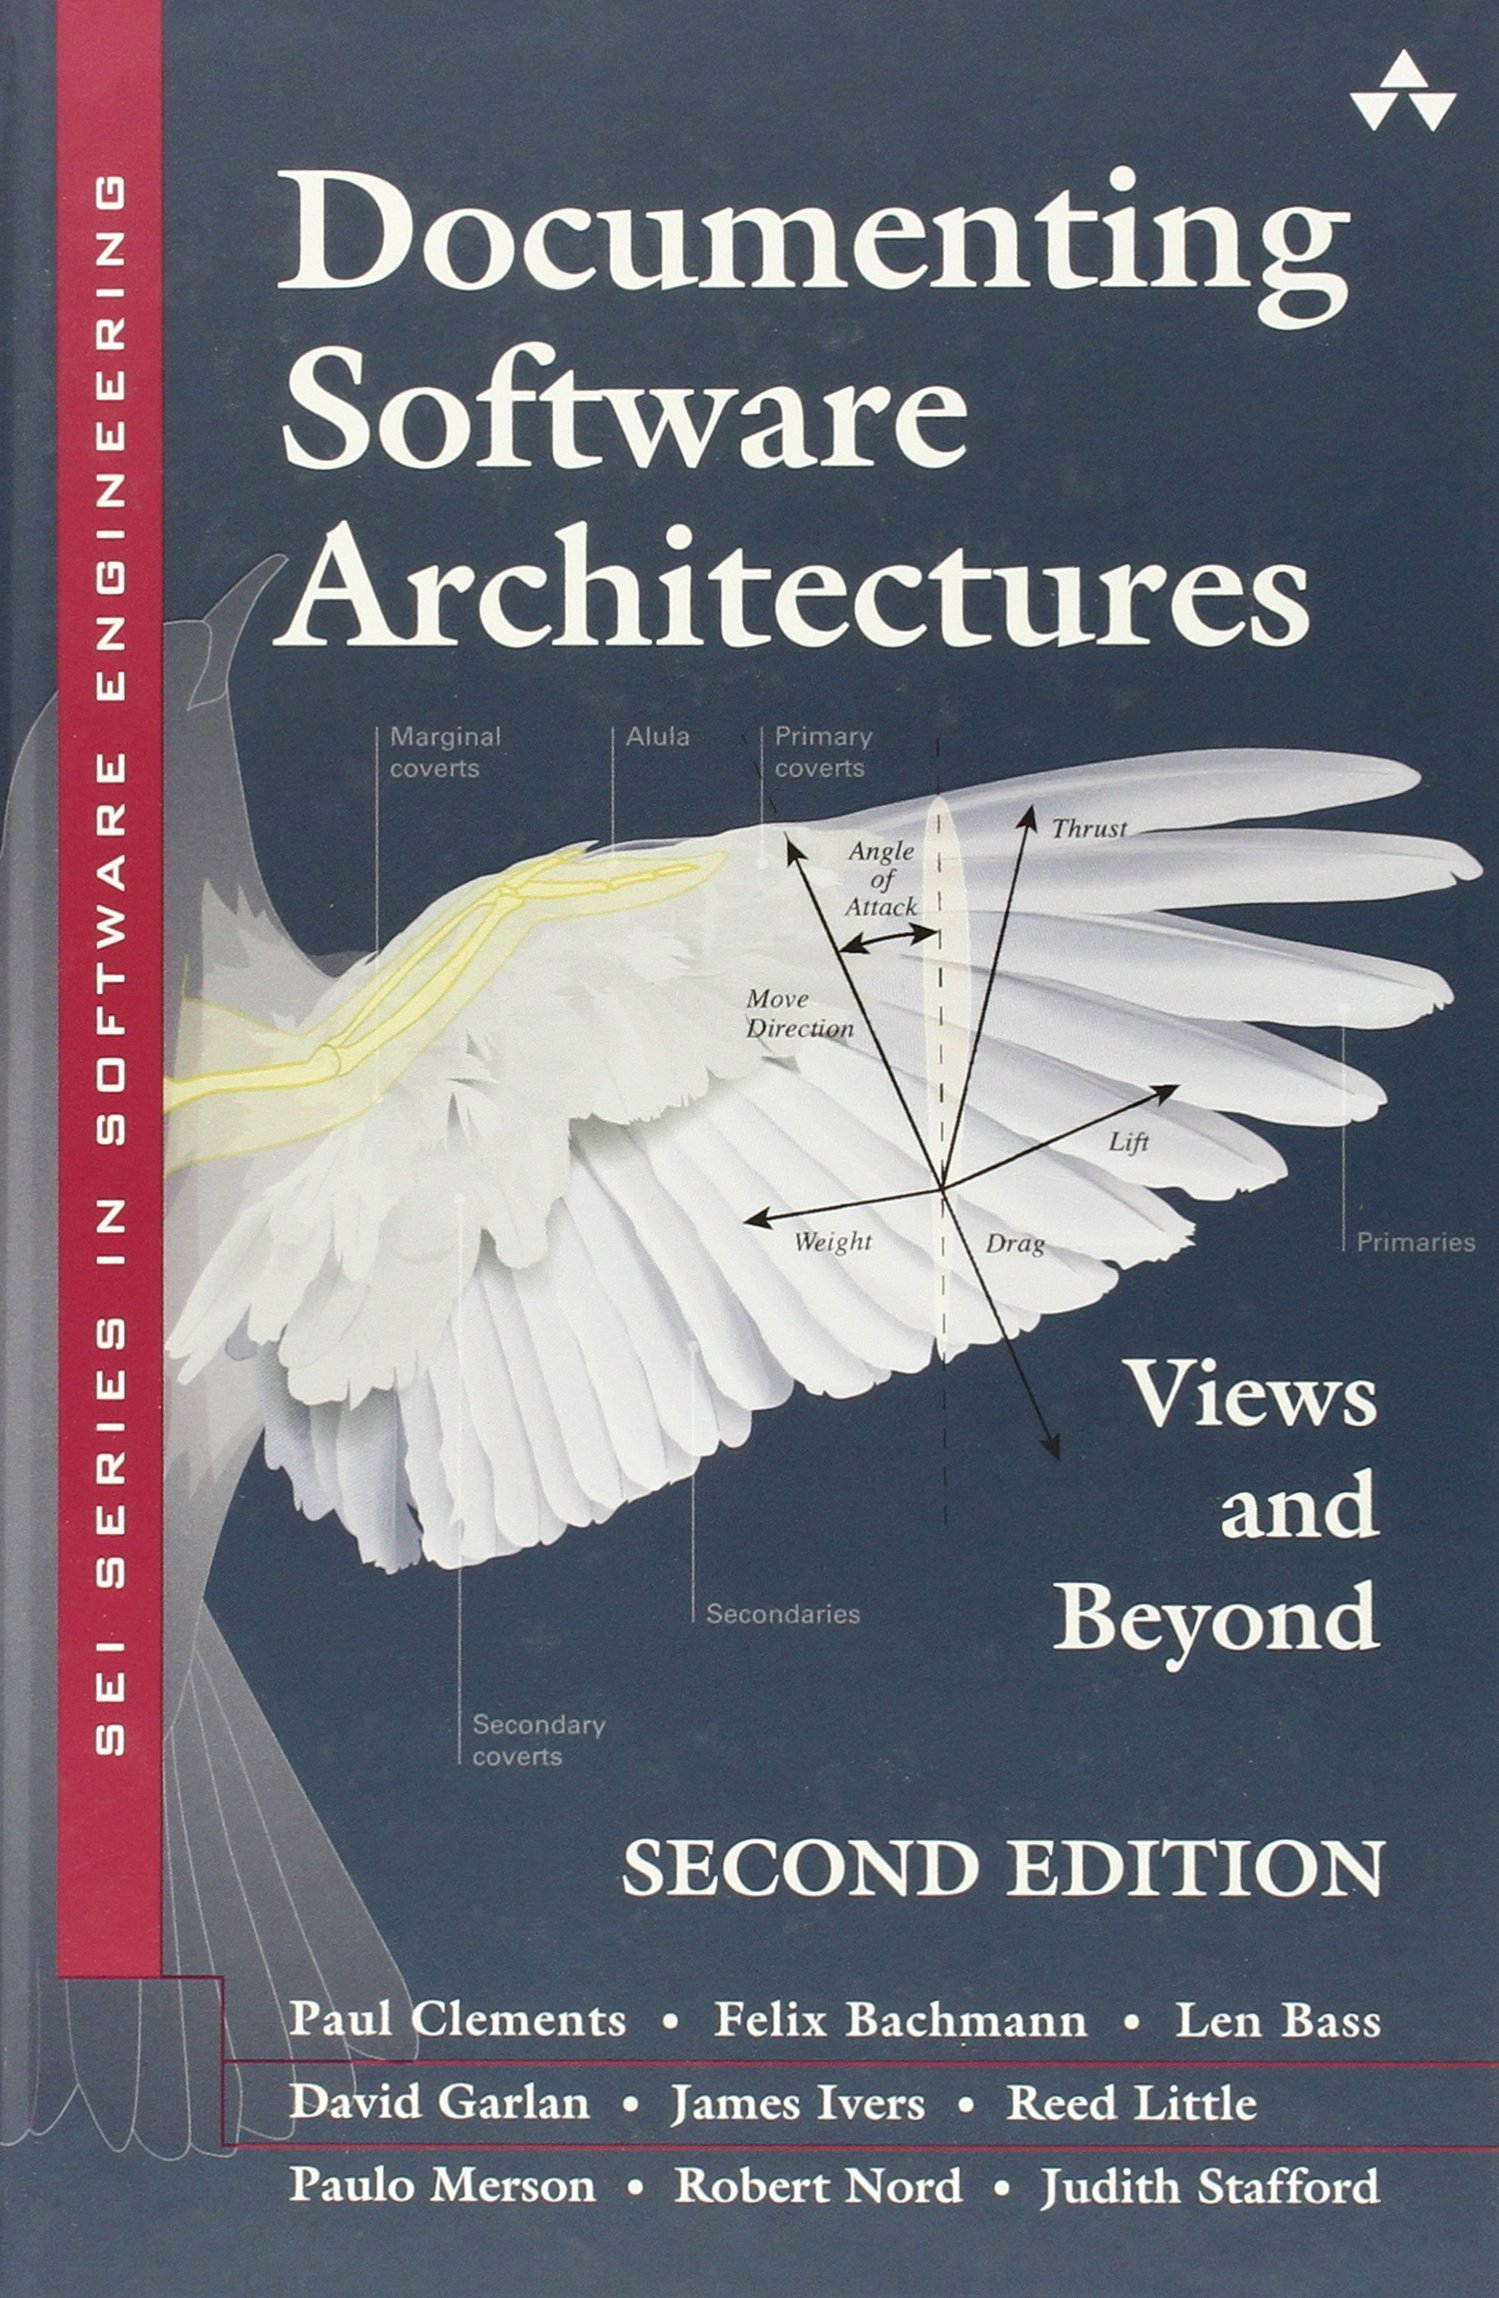 My Best Vacation Ever Essay Documenting Software Architectures Views And Beyond Nd Edition Paul  Clements Felix Bachmann Len Bass David Garlan James Ivers Reed Little   Essays On Corruption also All My Sons Essays Documenting Software Architectures Views And Beyond Nd Edition  Transgender Essays